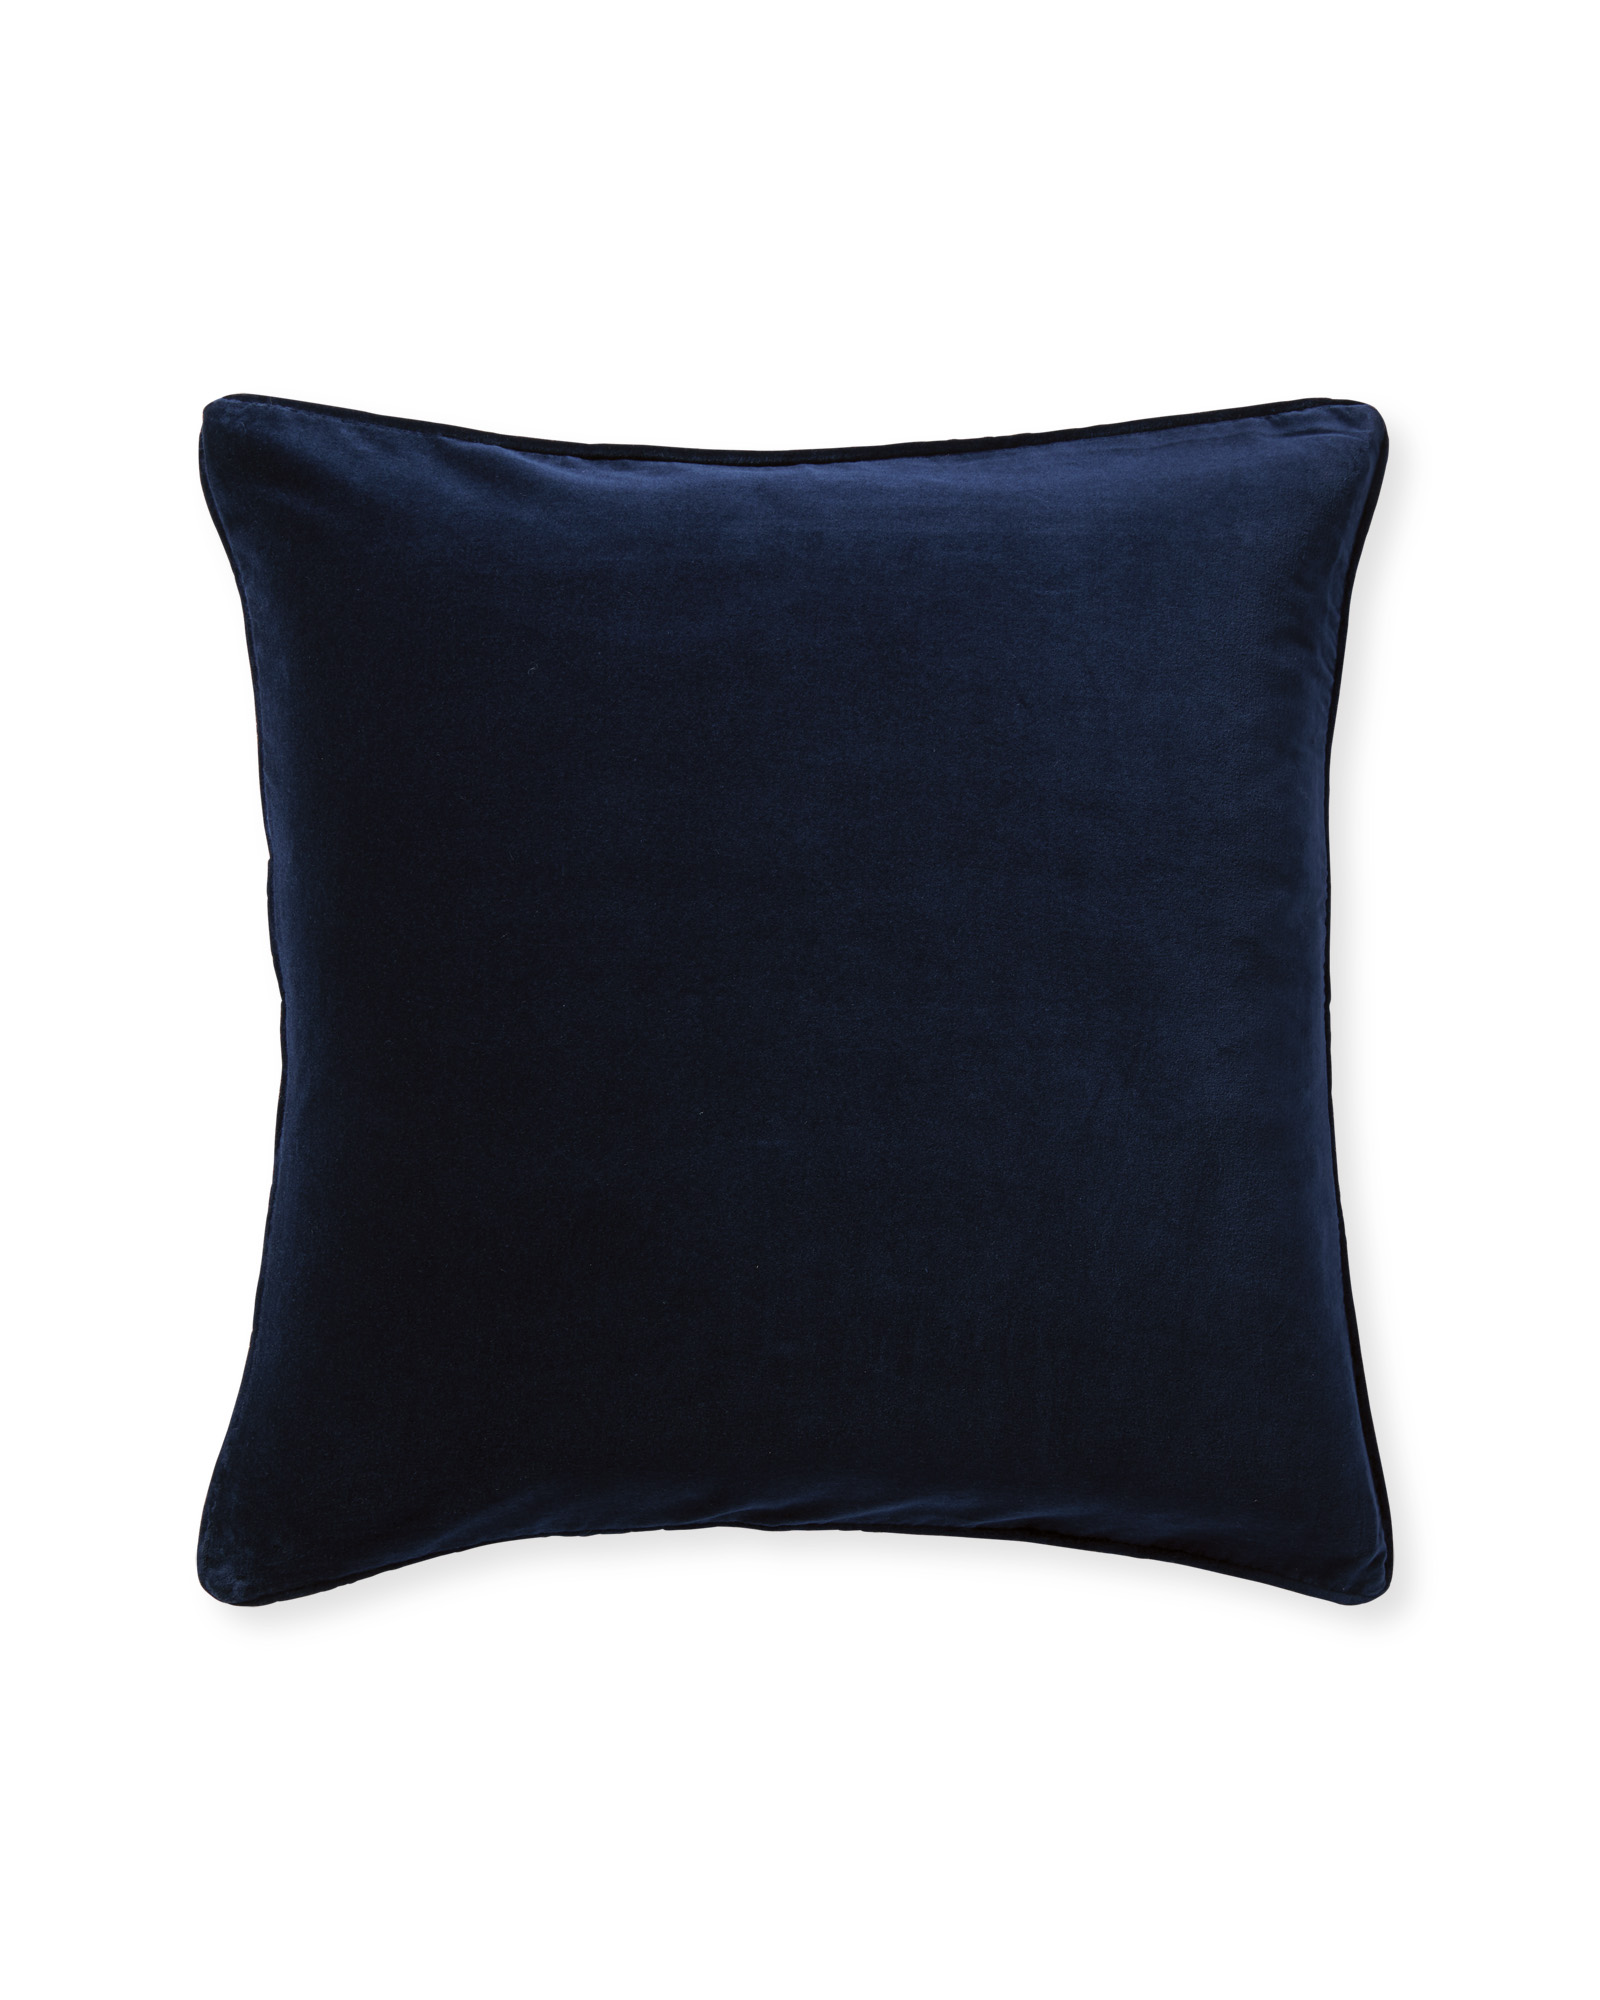 Kingsbury Pillow Cover, Navy